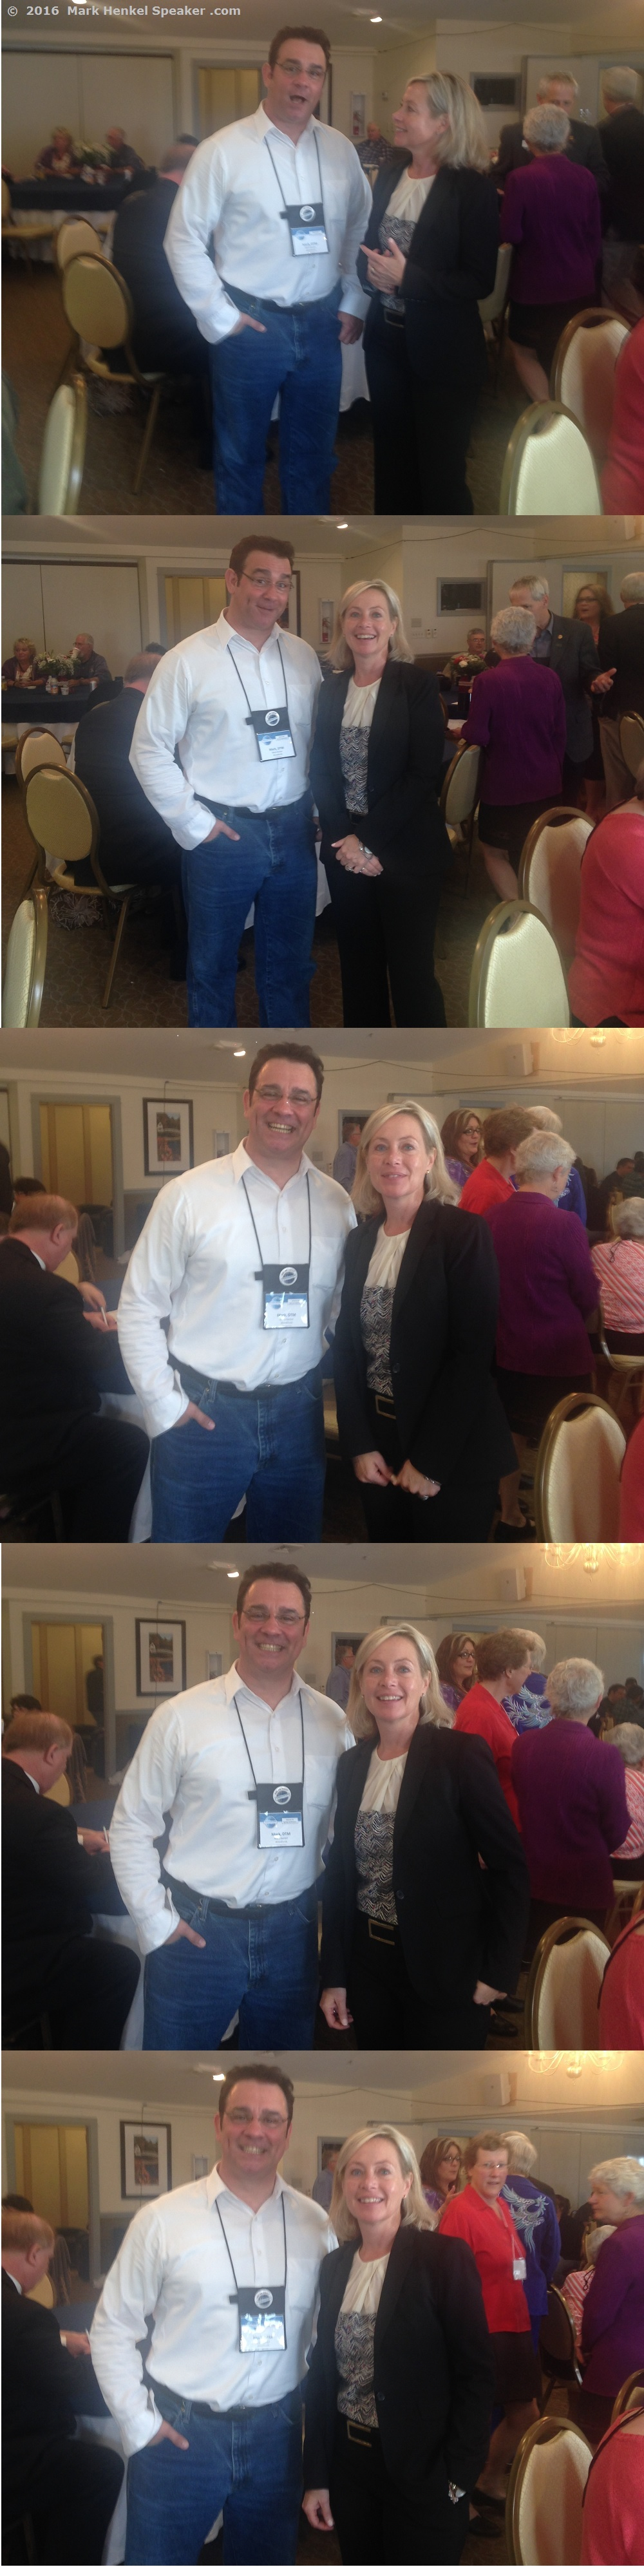 sally-newell-cohen-and-mark-henkel-d45-spring-conference-may-20-22-2016-bar-harbor-maine-c-1000x4000